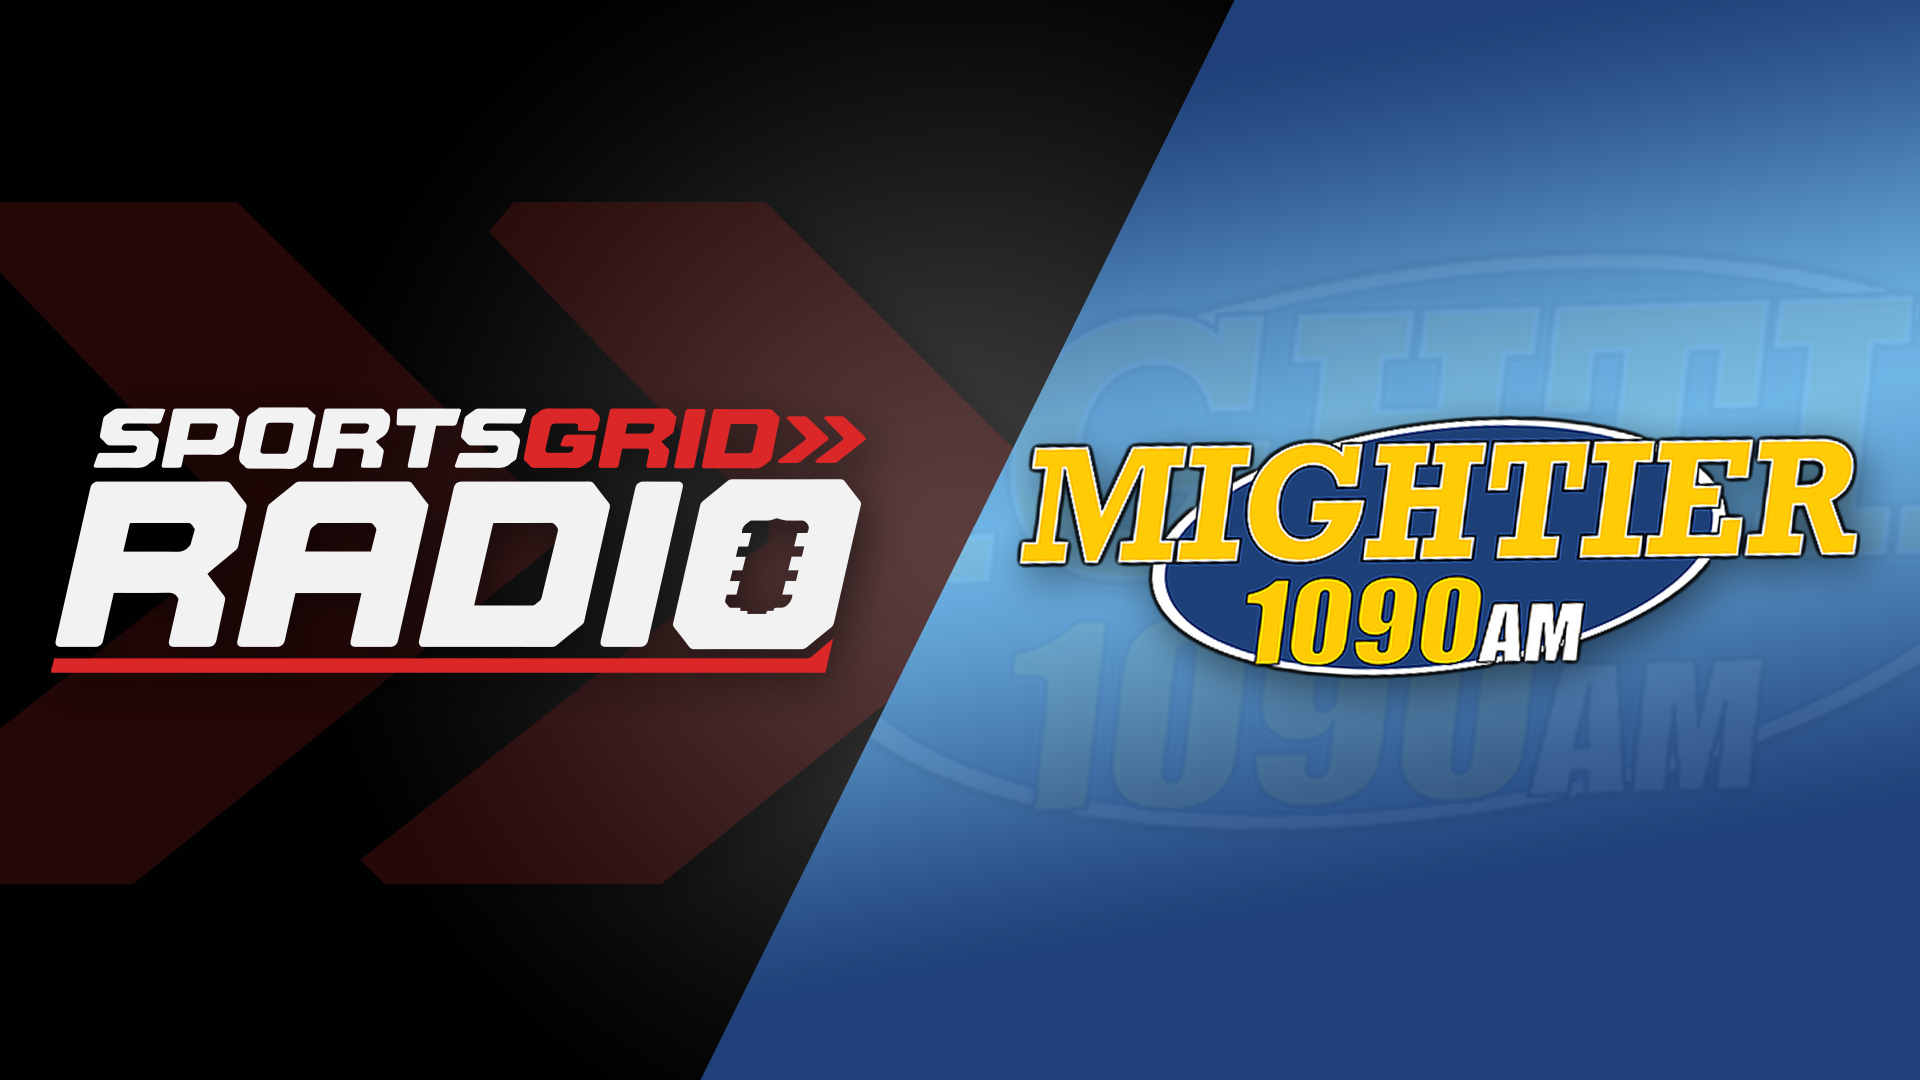 Scott Ferrall is BACK with SoCal's Mightier 1090 AM